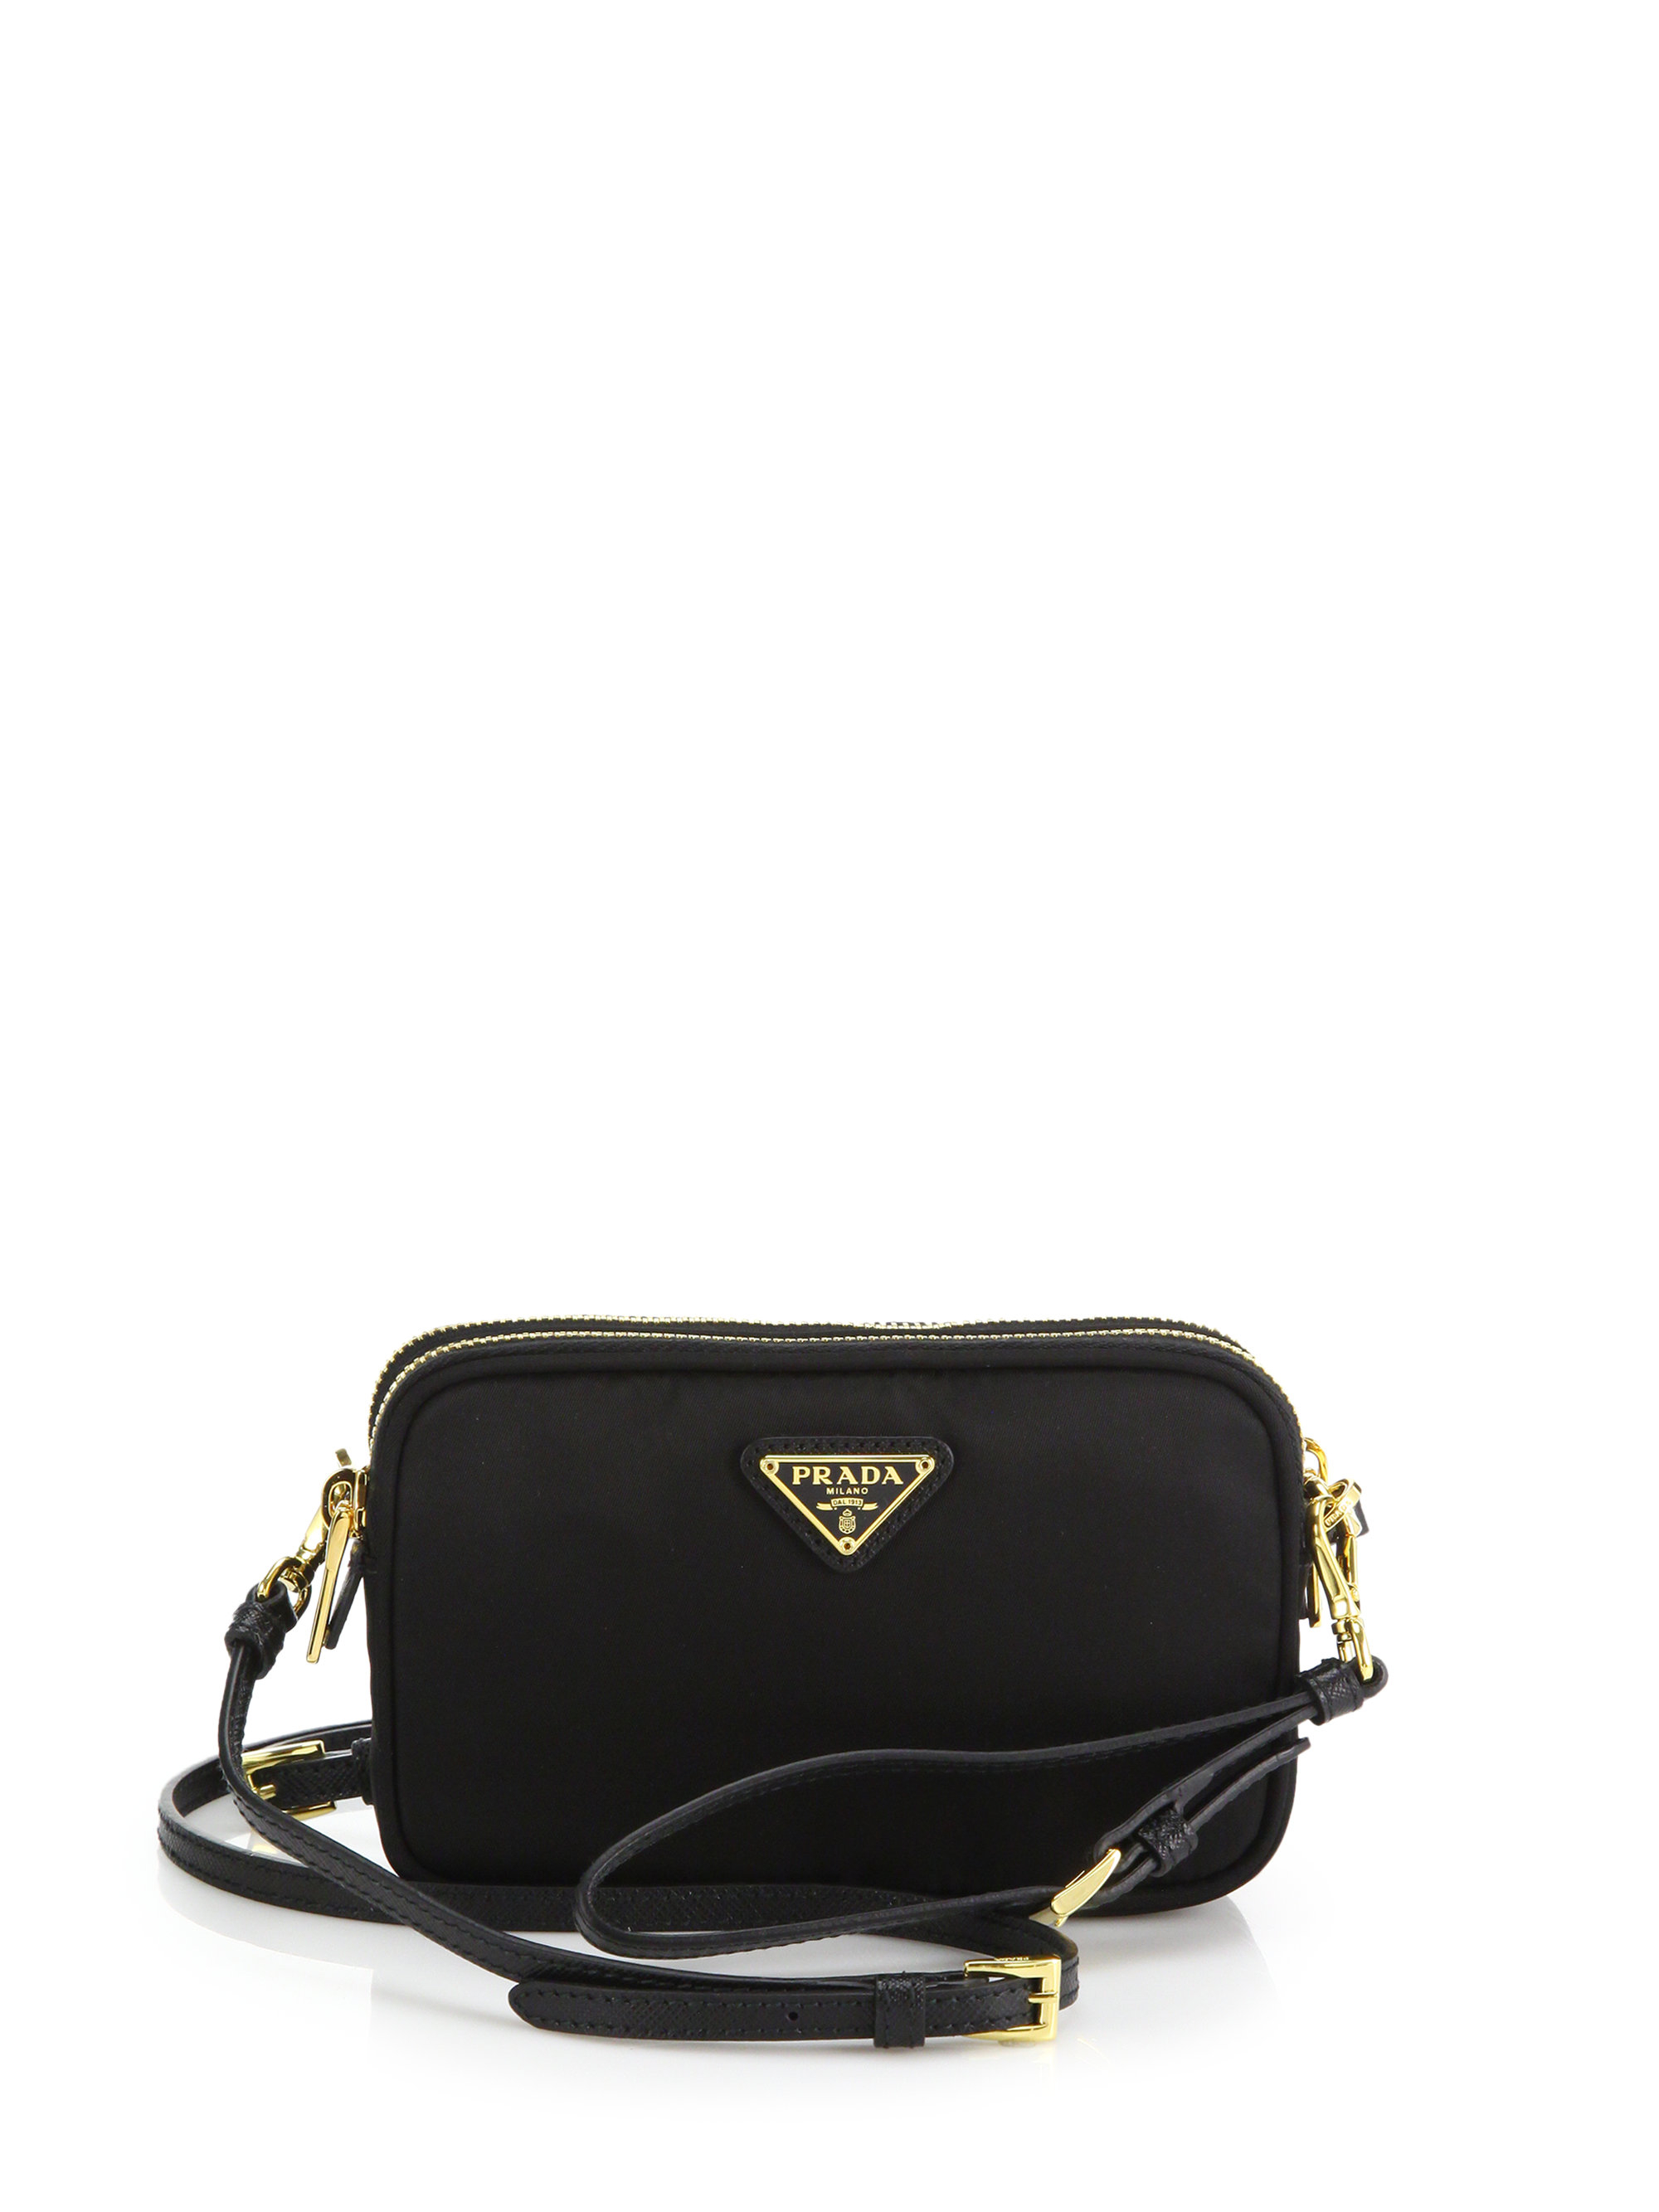 Prada Nylon Camera Bag in Black | Lyst